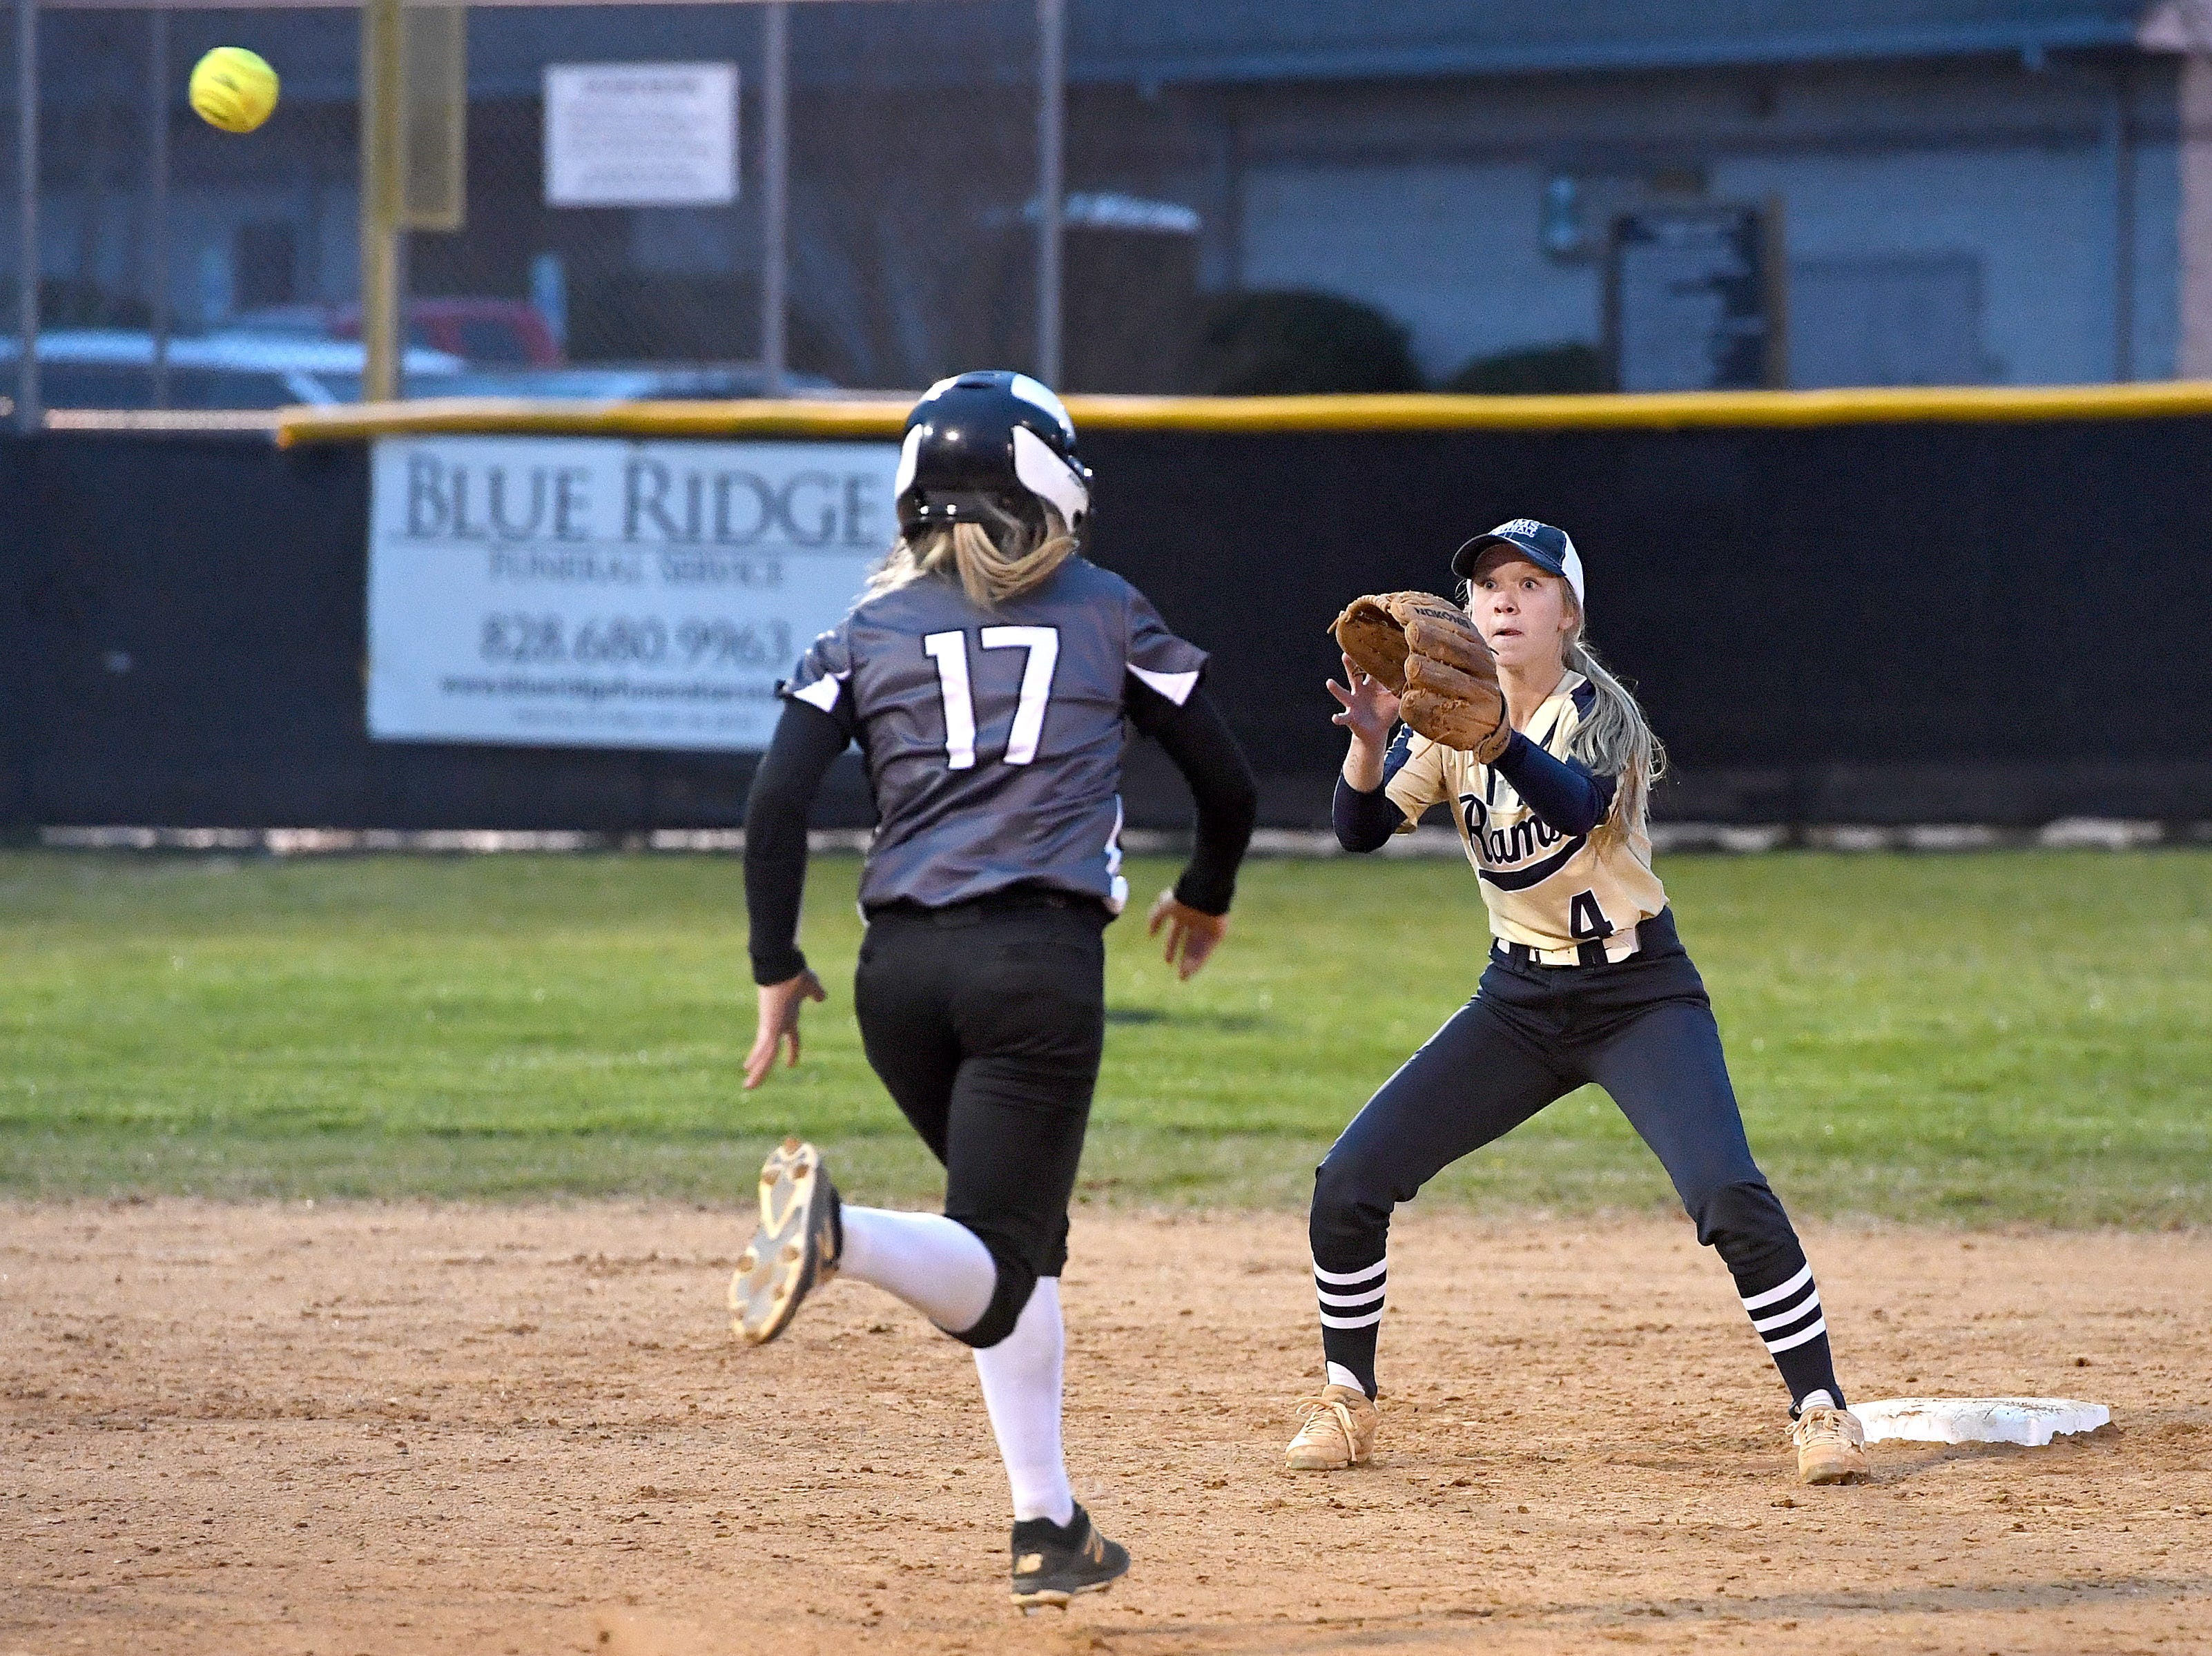 North Buncombe's Riley McCurry runs for second base as Roberson's Hayley Morrow makes the play during their game at North Buncombe High School on March 7, 2019. North Buncombe defeated Roberson 3-1.